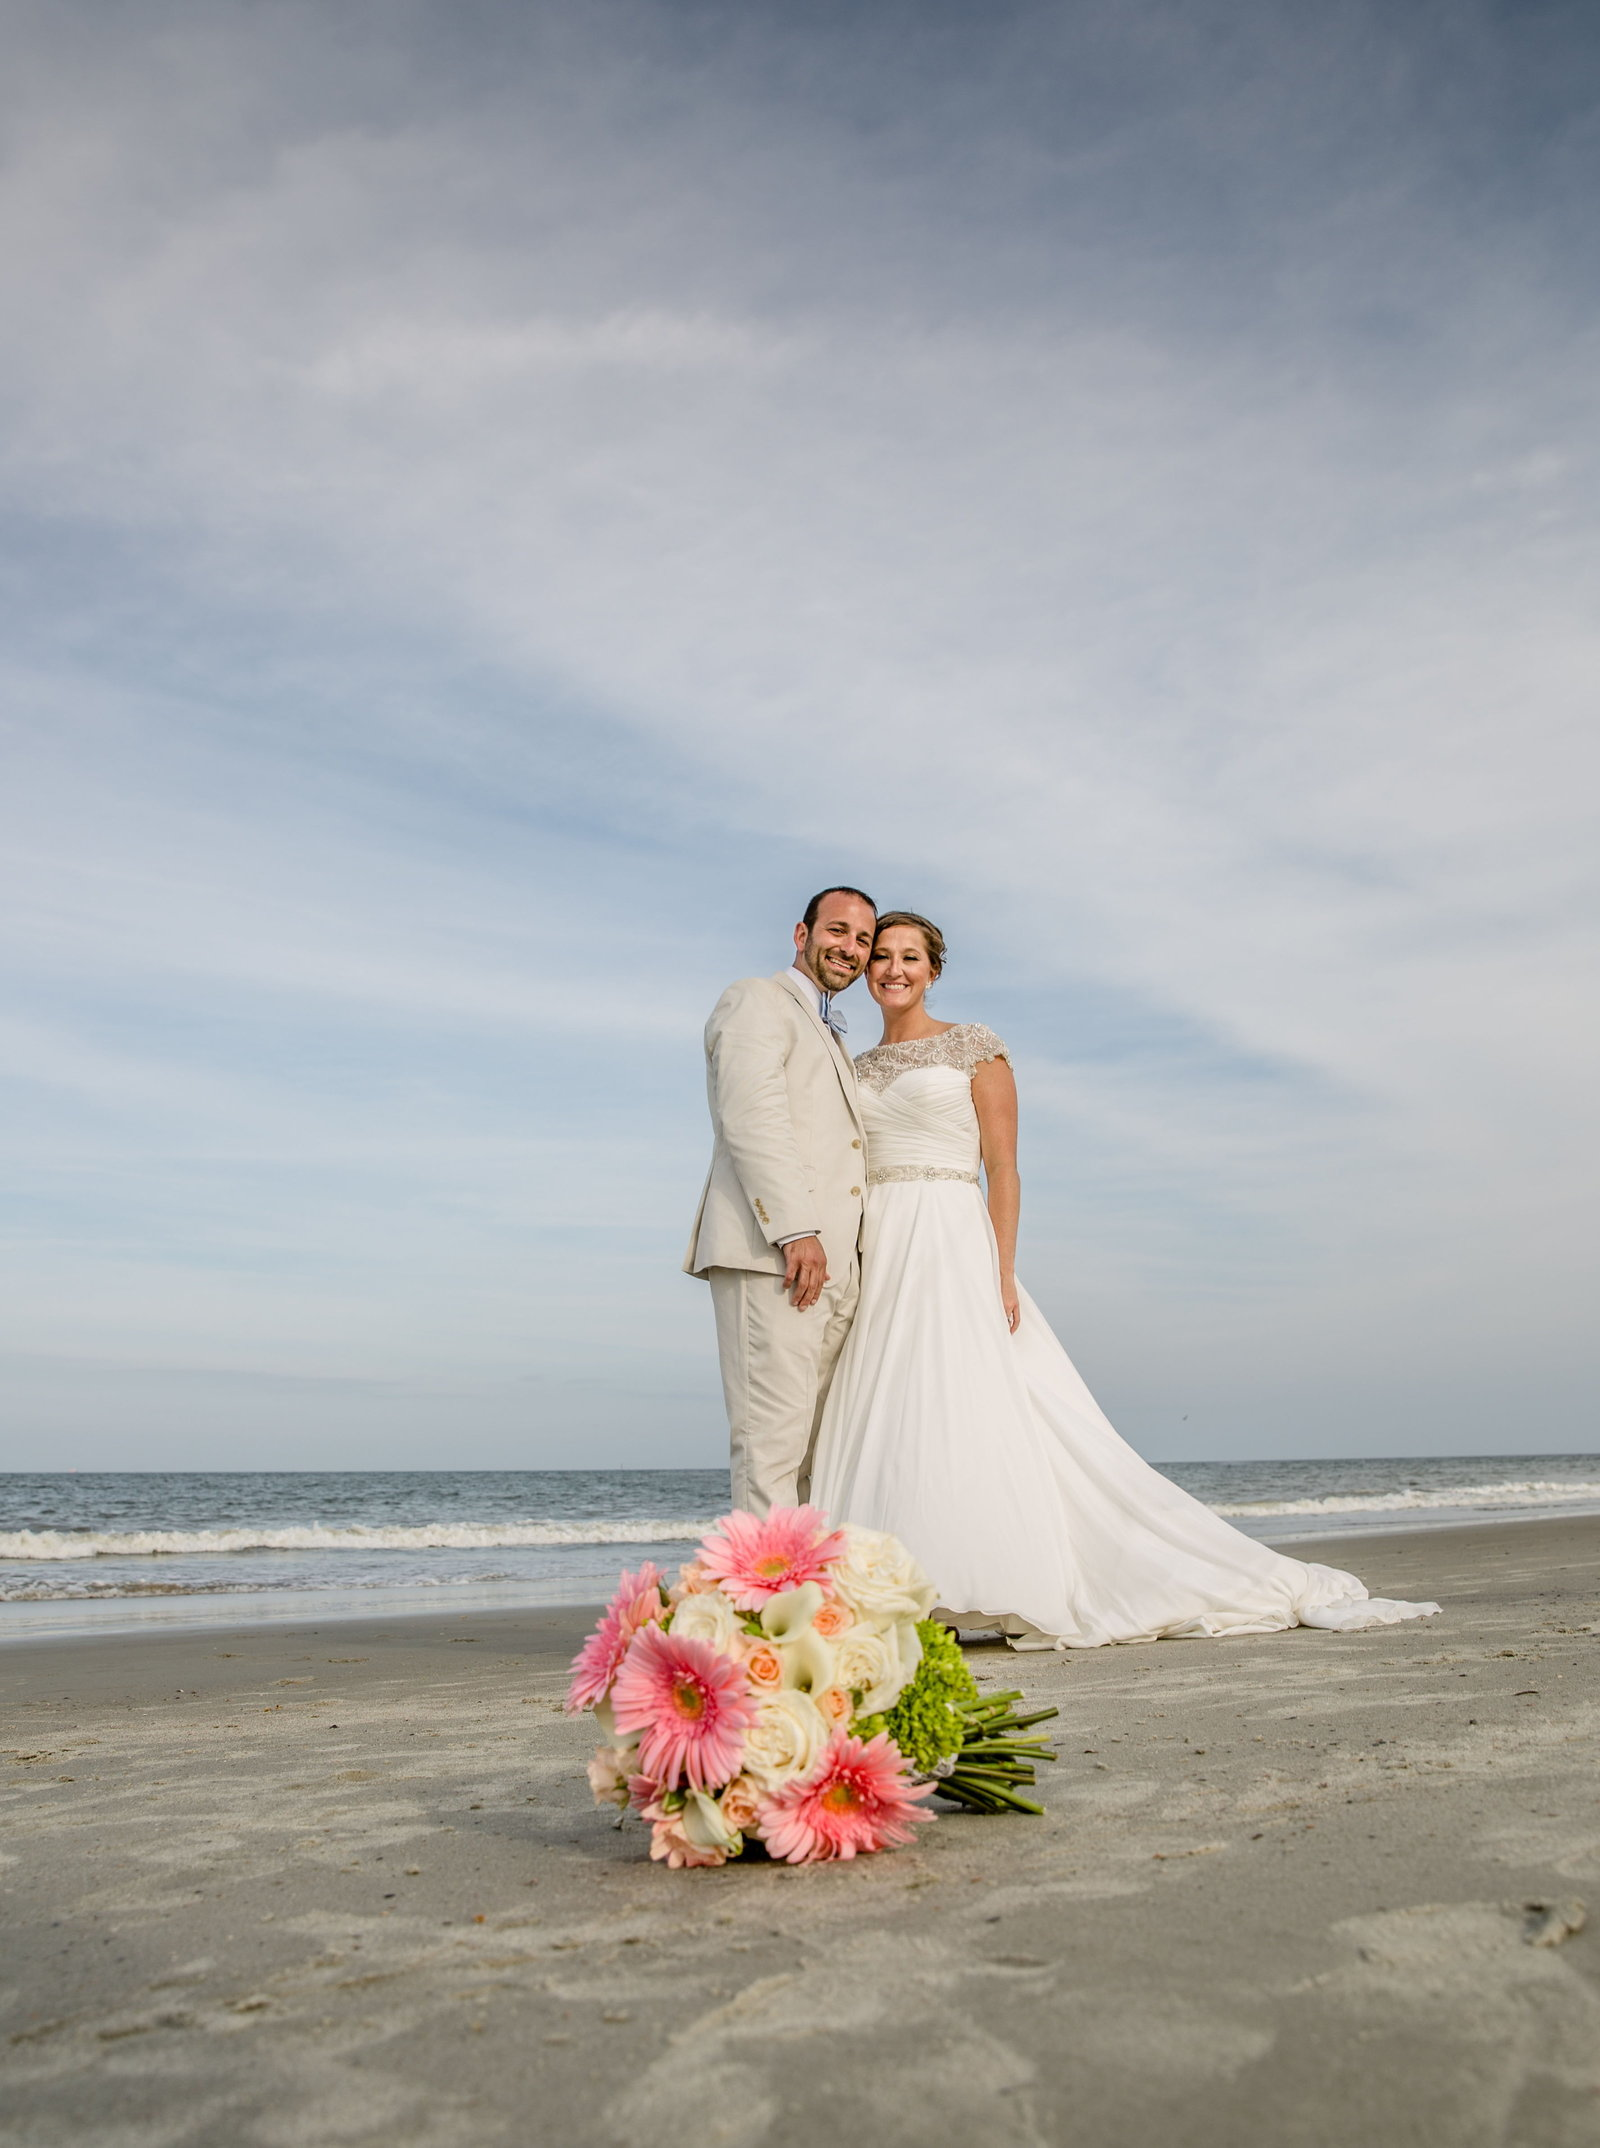 Tony + Jenn, Tybee Island Wedding, Bobbi Brinkman Photography